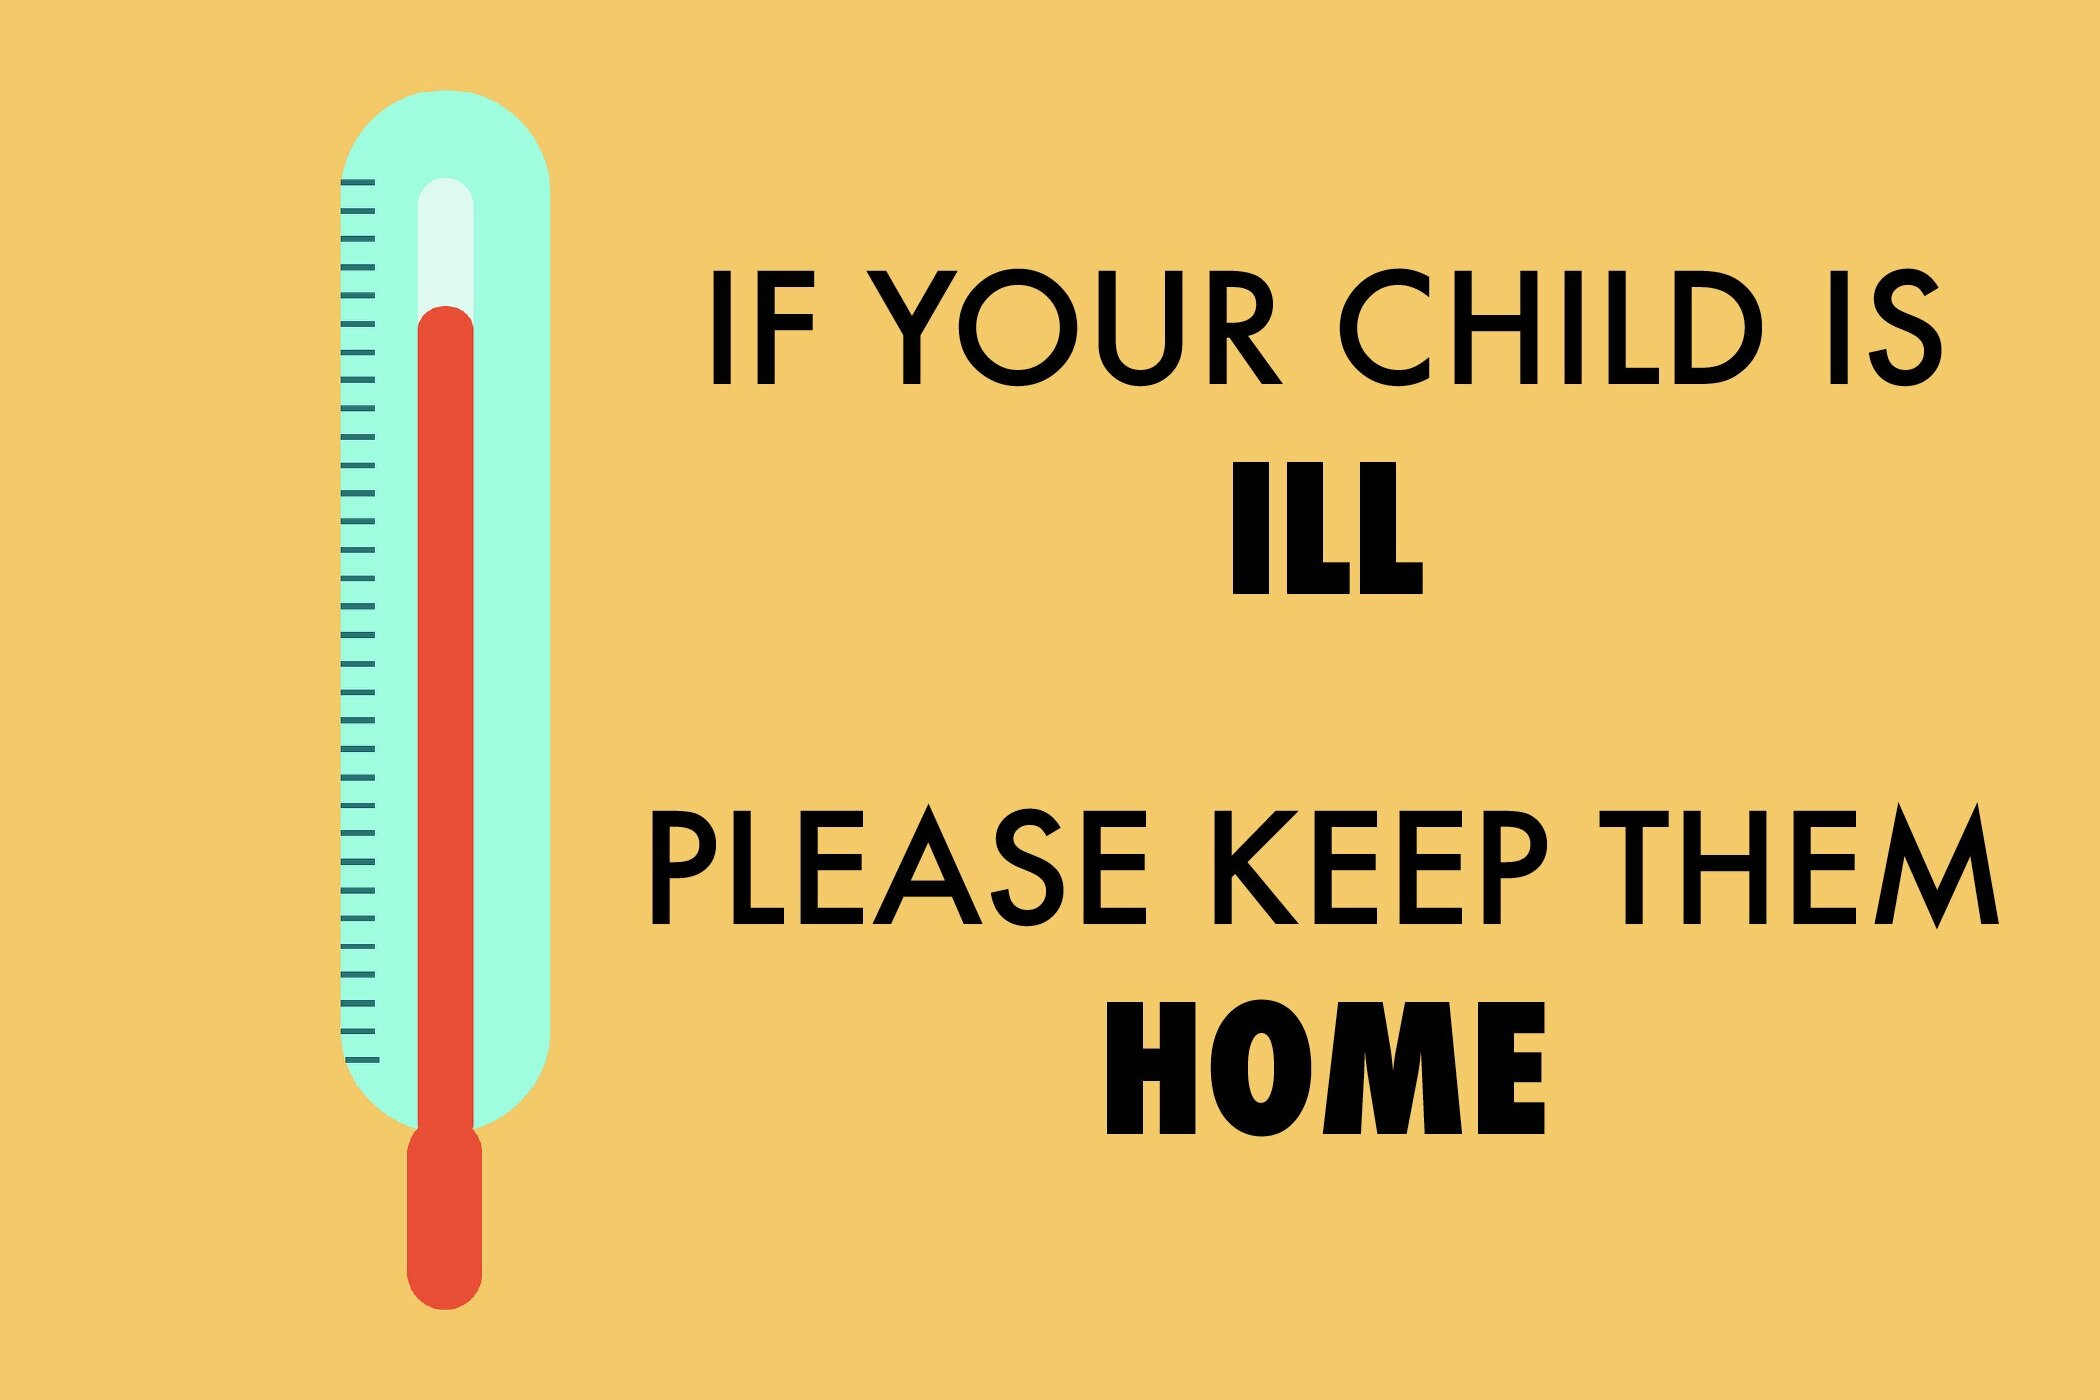 If+your+child+is+sick.jpg